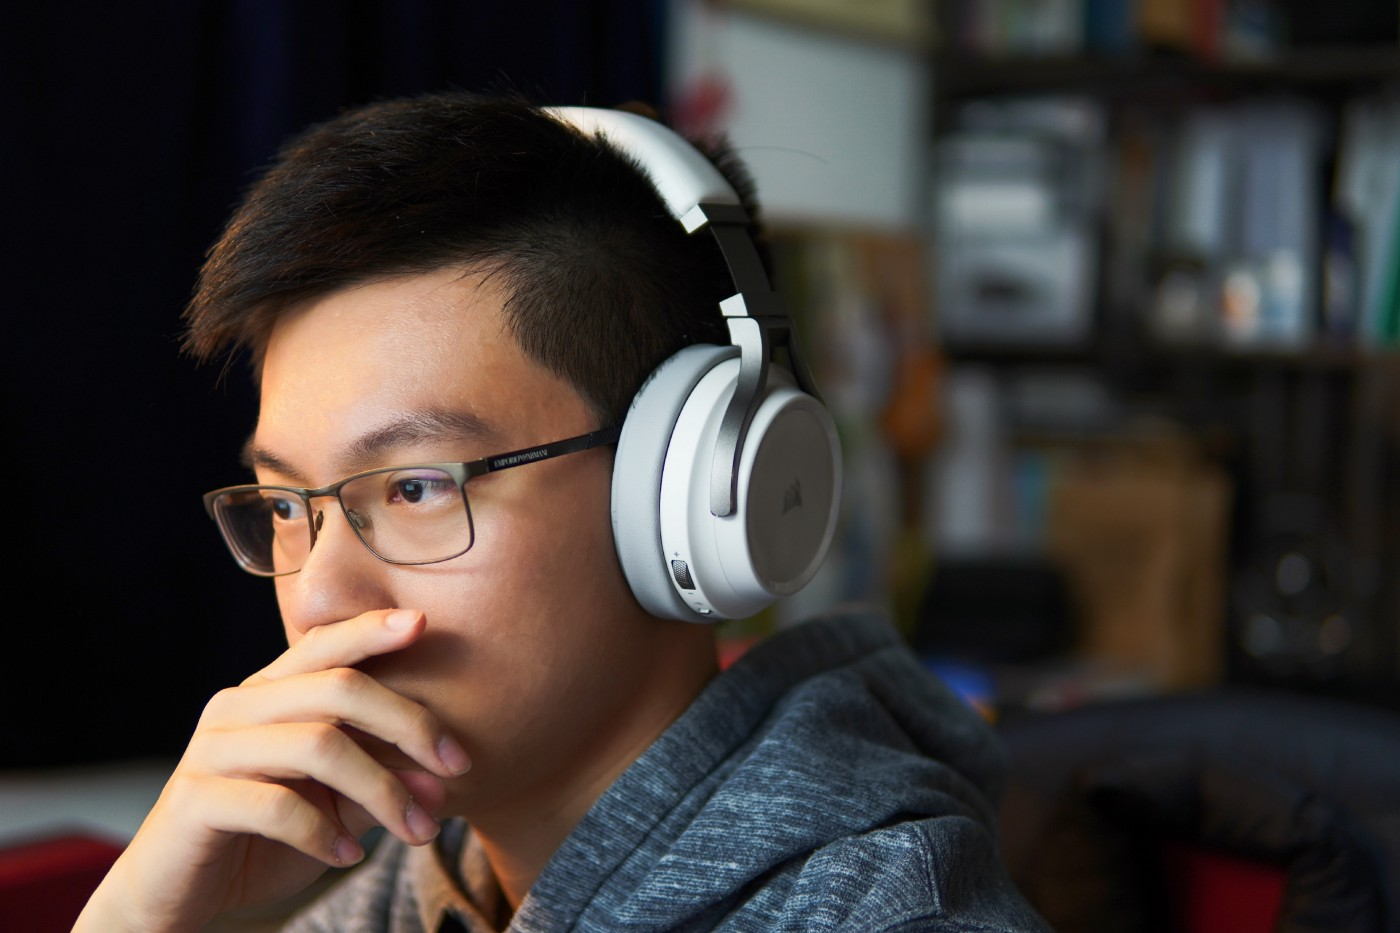 A medical student studying with his headphones on